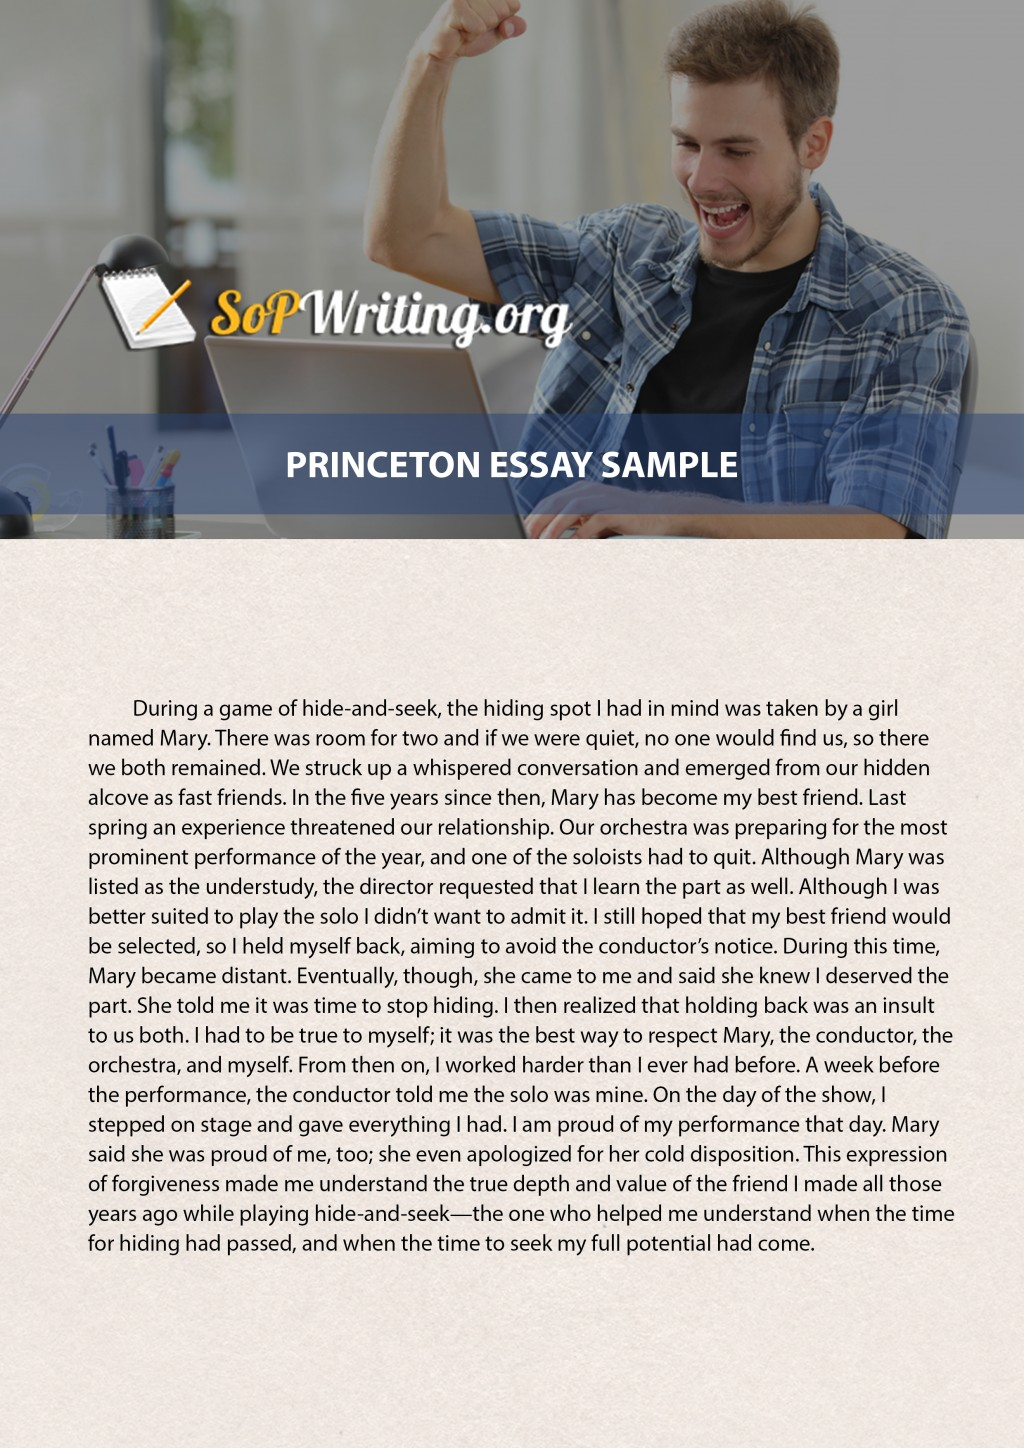 010 Princeton Essay Prompts Sample Sop Writing Dreaded University Prompt 2016 Large